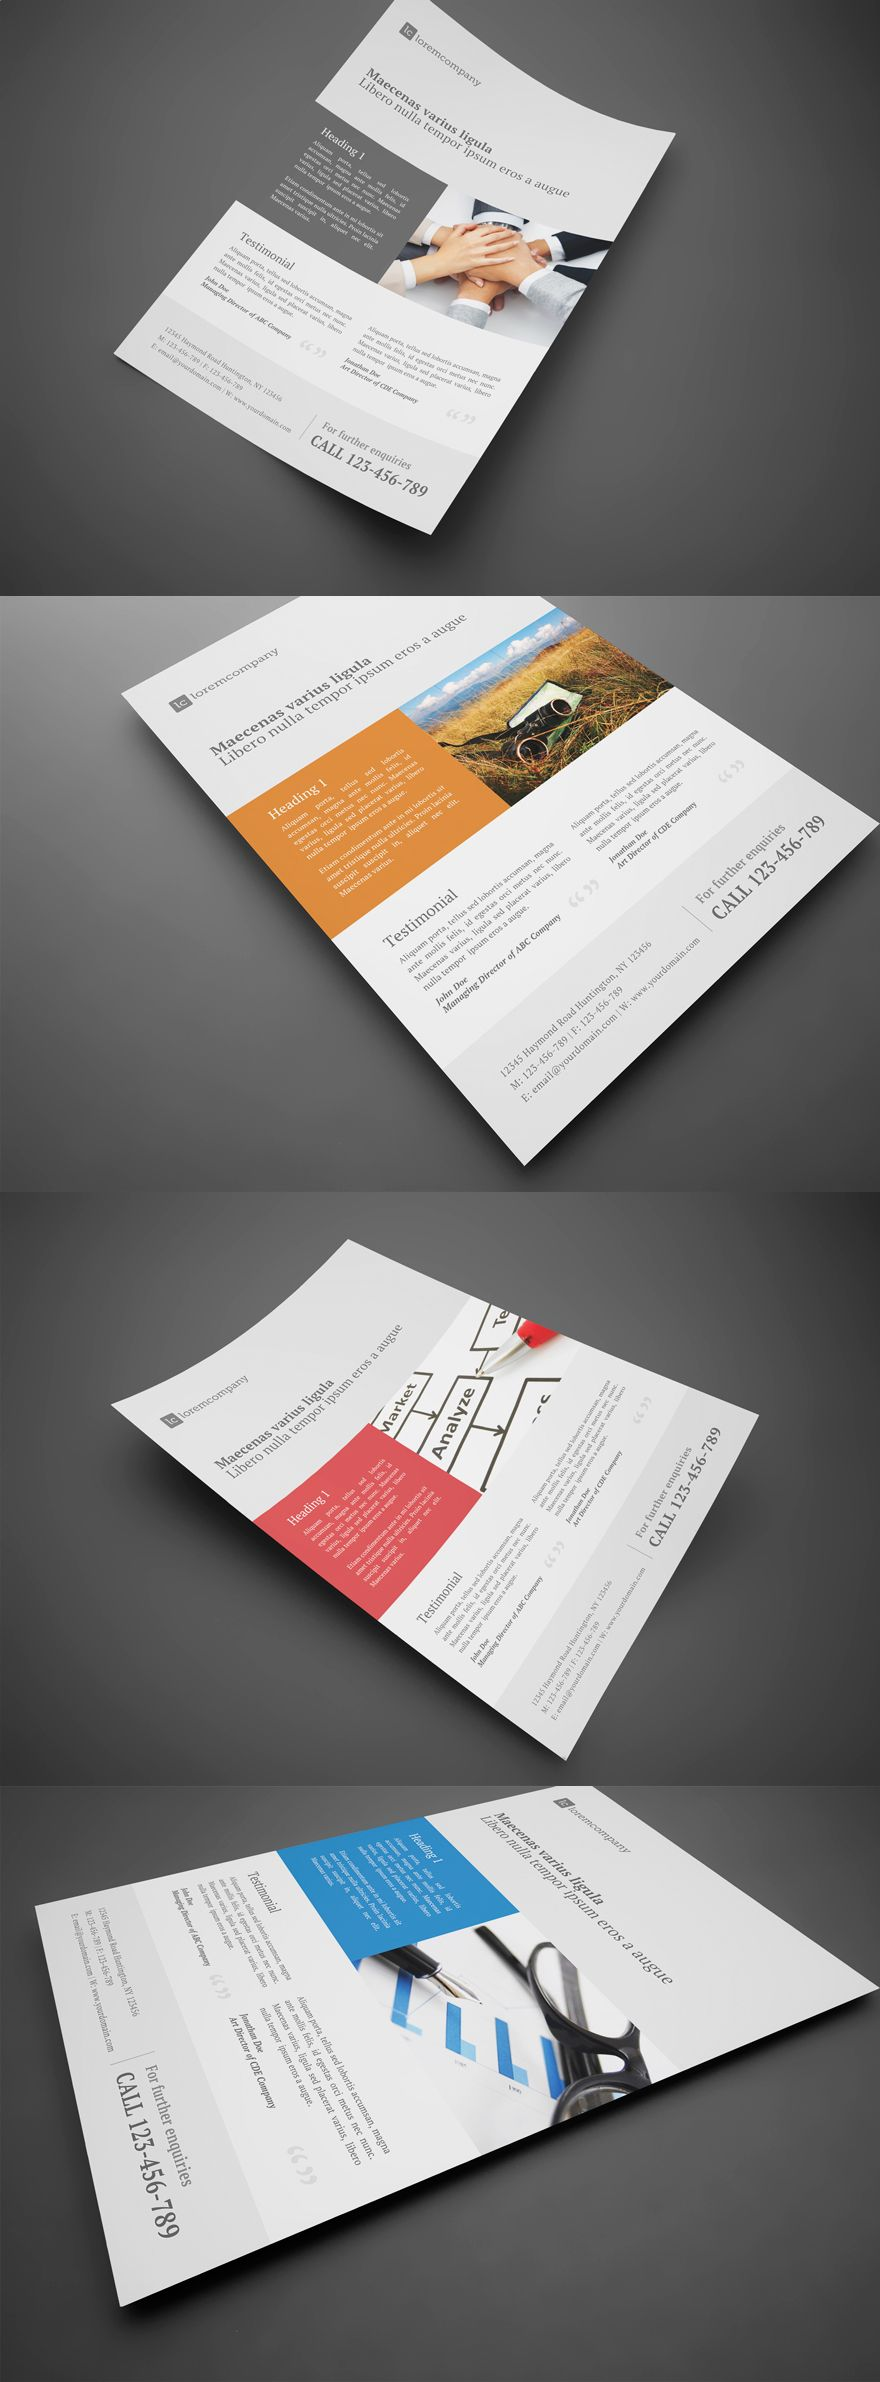 Clean Professional Corporate Flyer By Glenngoh Via Creattica